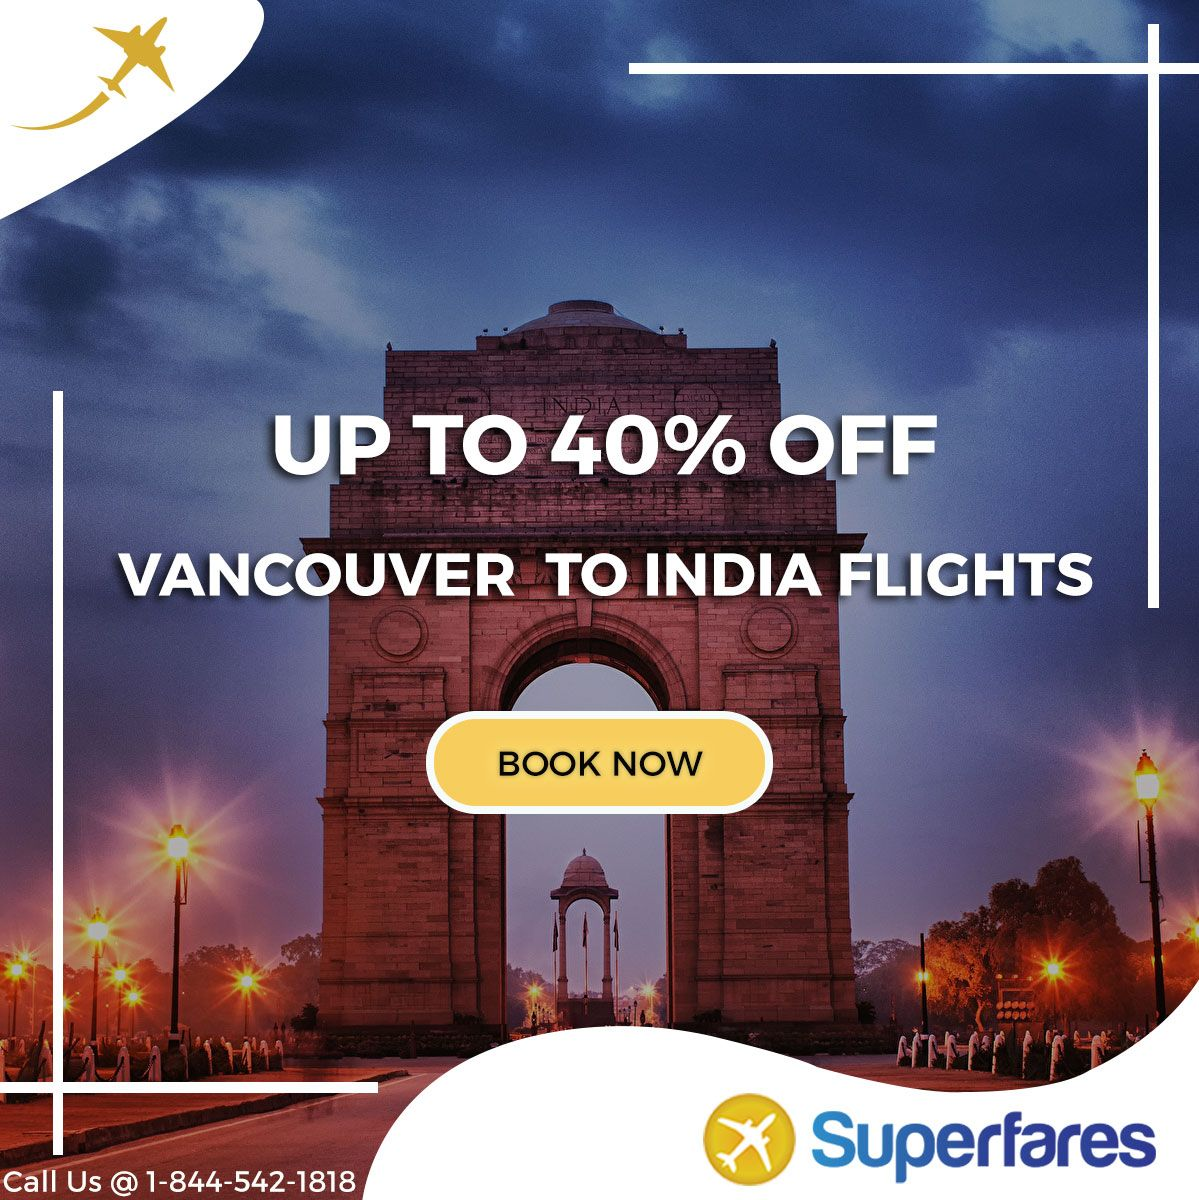 Grab The Best Offers on Vancouver(YVR) to India(IN